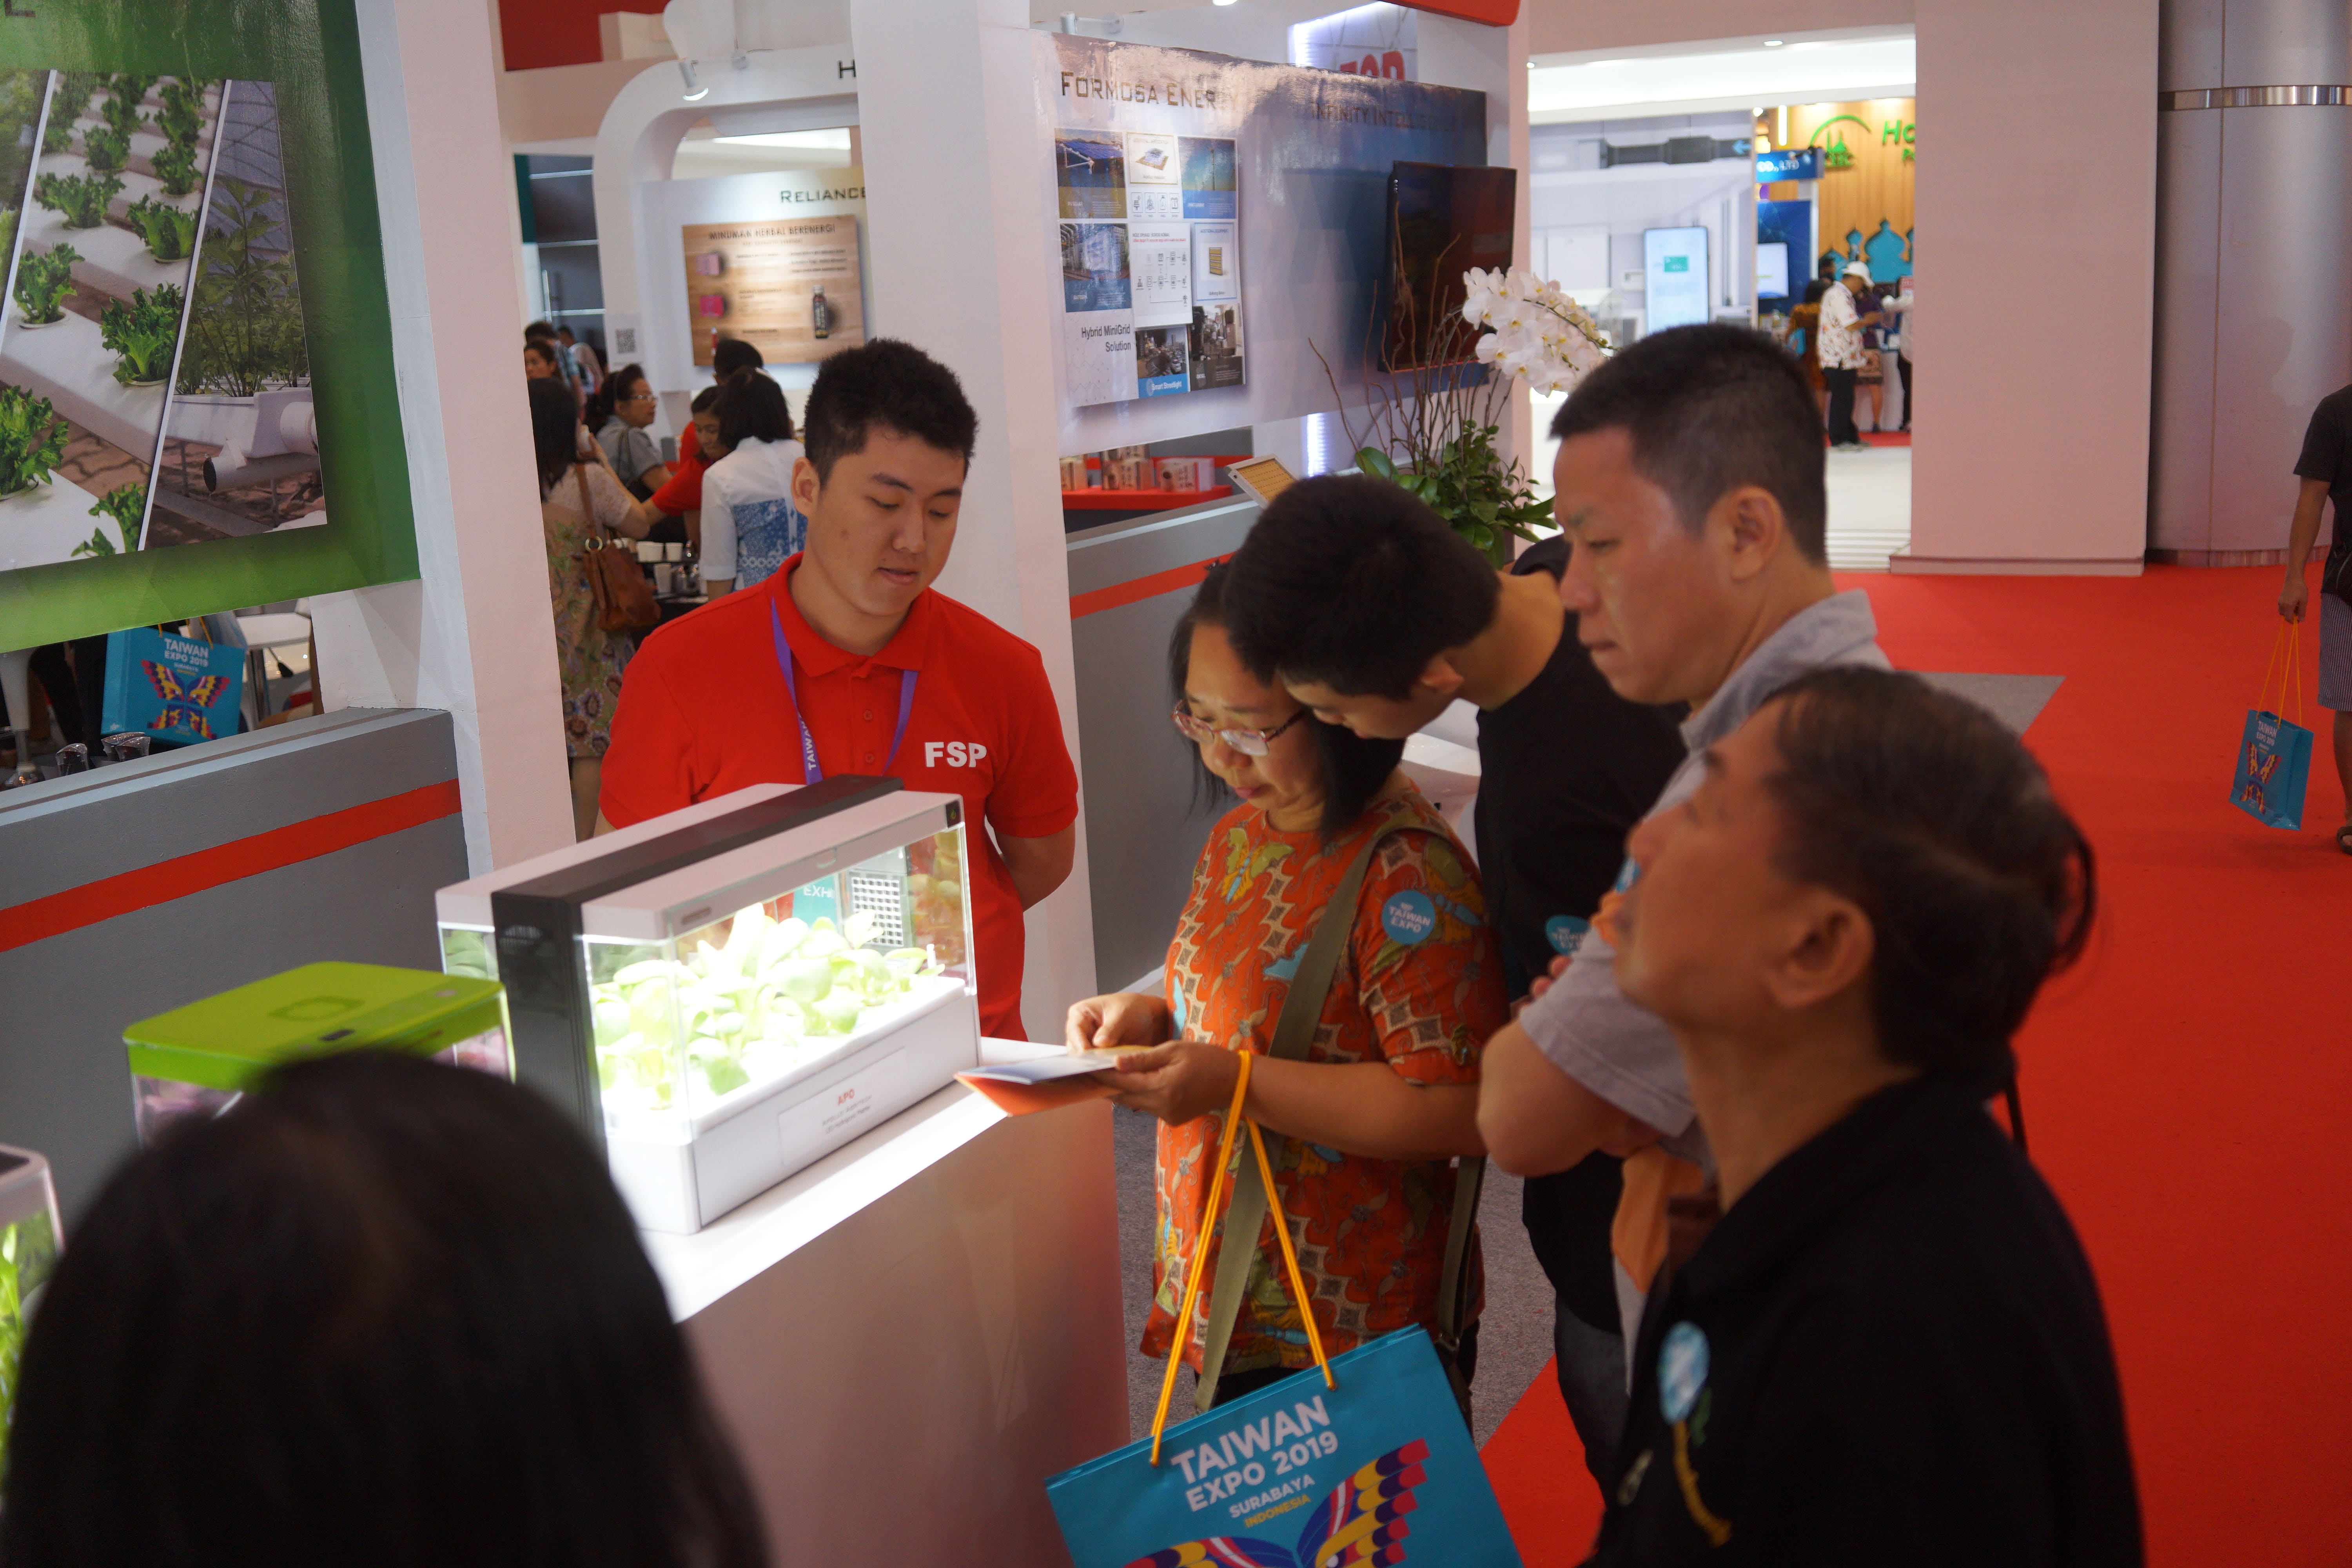 https://storage.googleapis.com/www.taiwantradeshow.com.tw/model/photo/ID/2019/PH00037315-name.jpg